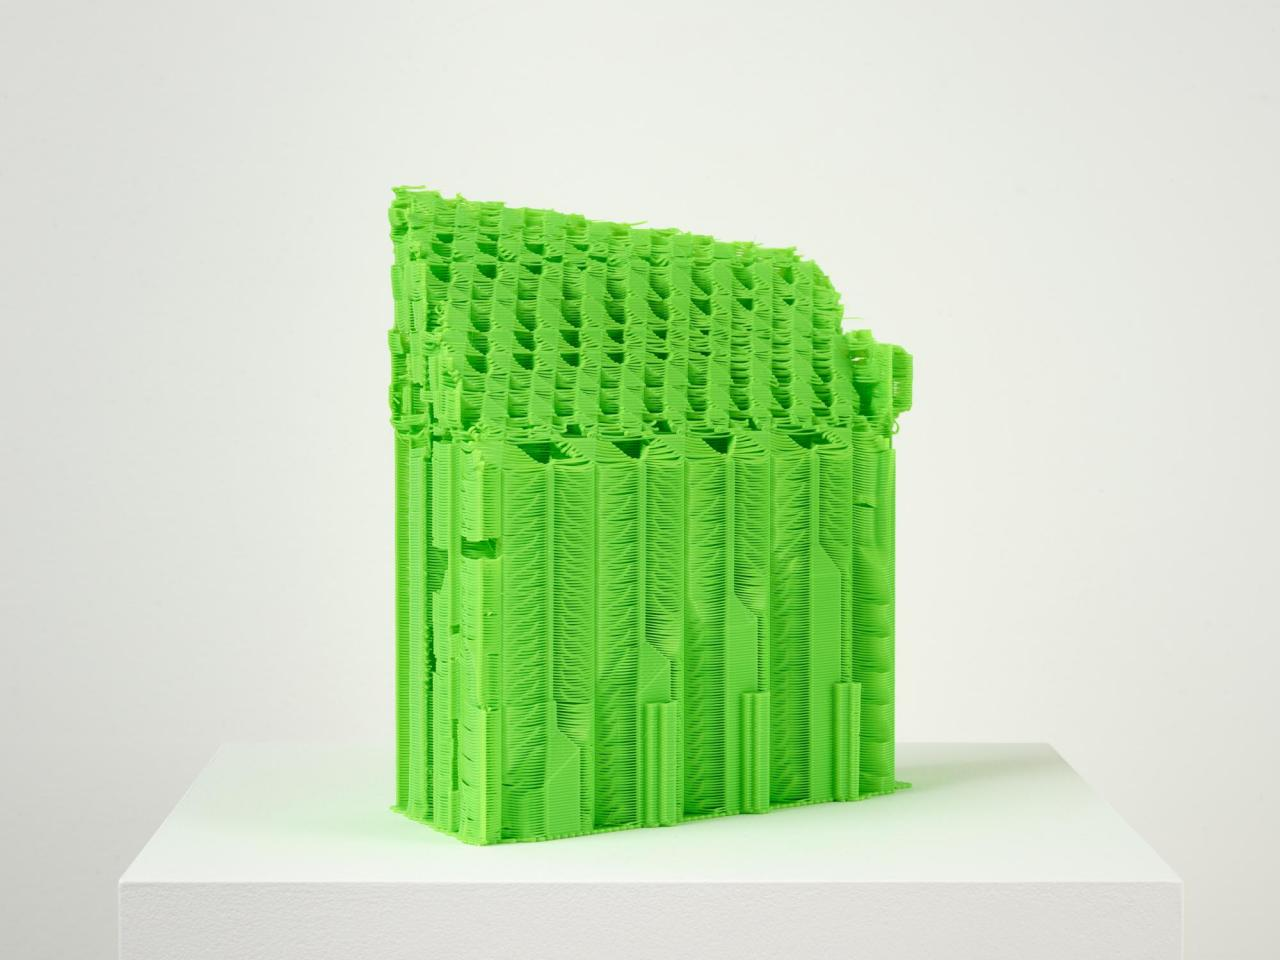 Samson Young, Support Structure # 7 , 2019, 3D-printed nylon, 25x 25x 11cm,© the artist. Courtesy Galerie Gisela Capitain, Cologne and Capitain Petzel, Berlin.